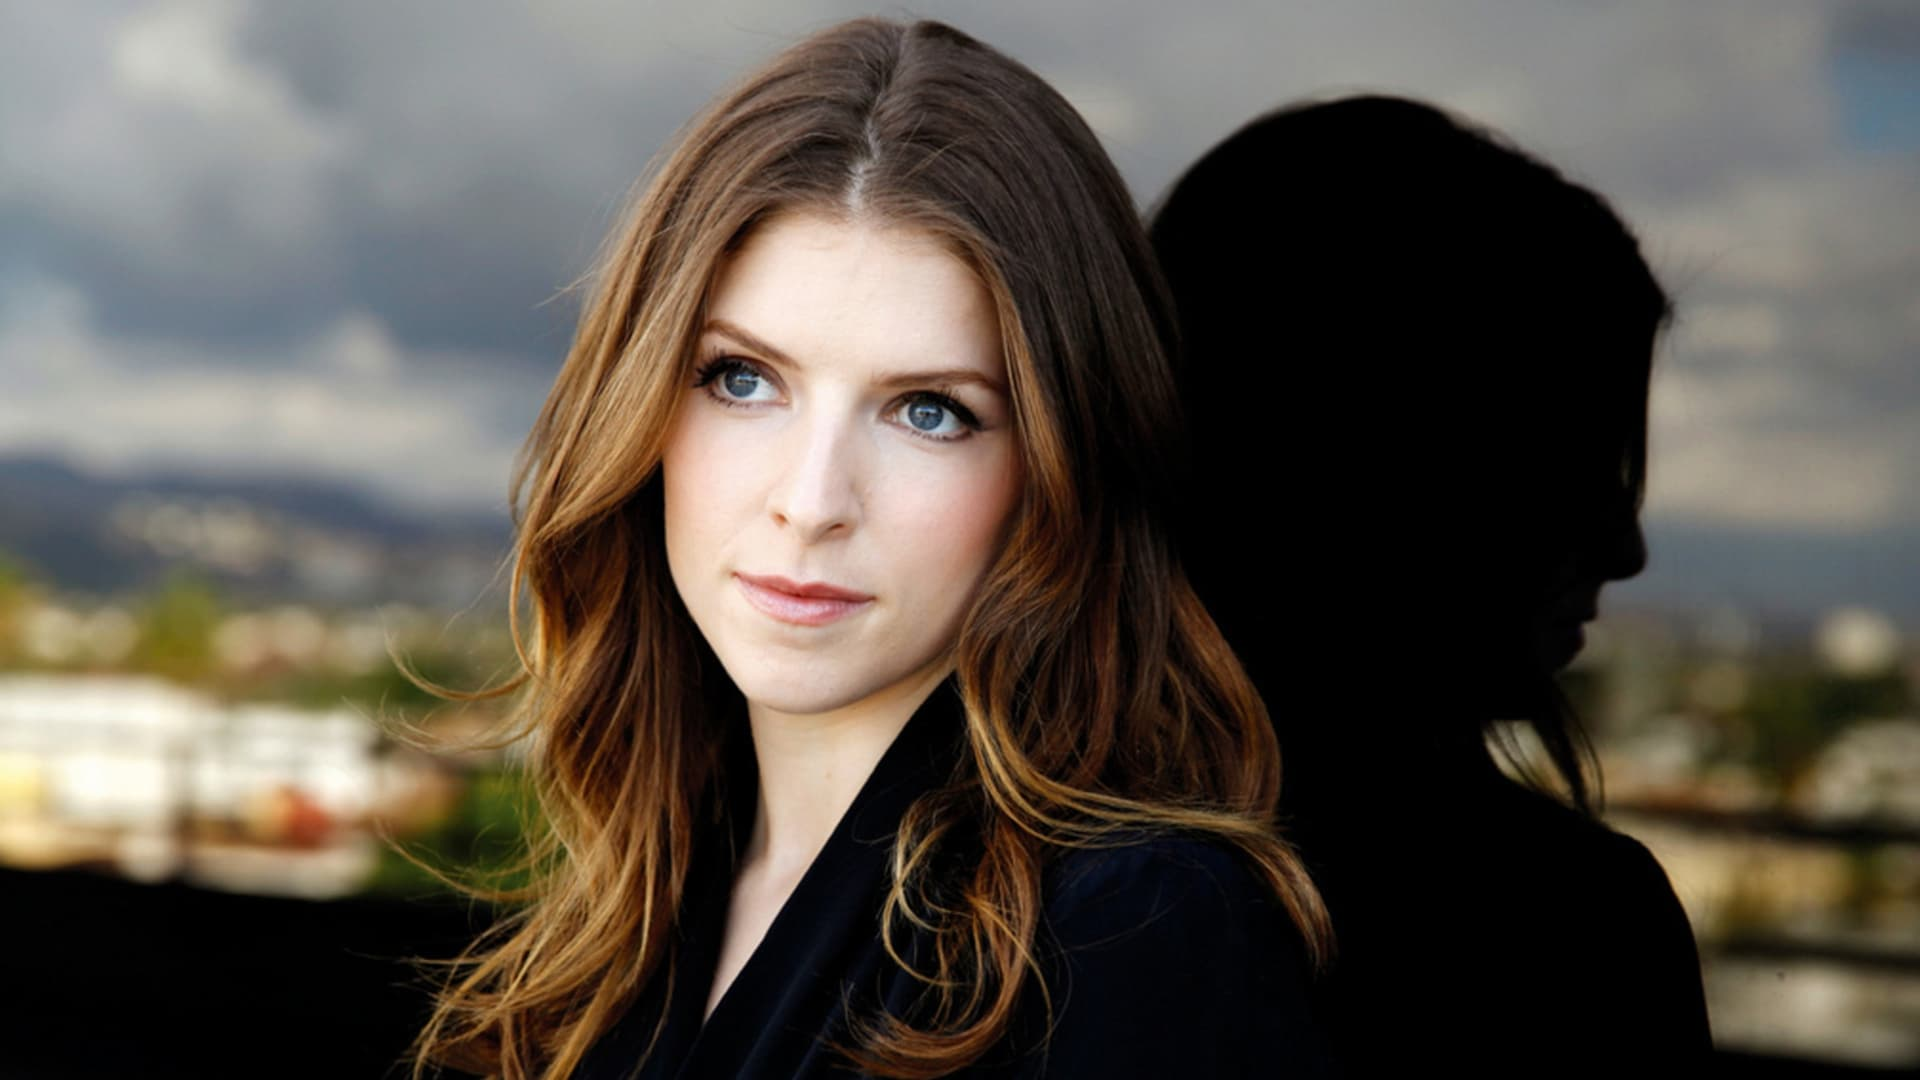 15+ Anna Kendrick wallpapers HD High Quality Resolution - Cute Hairstyle